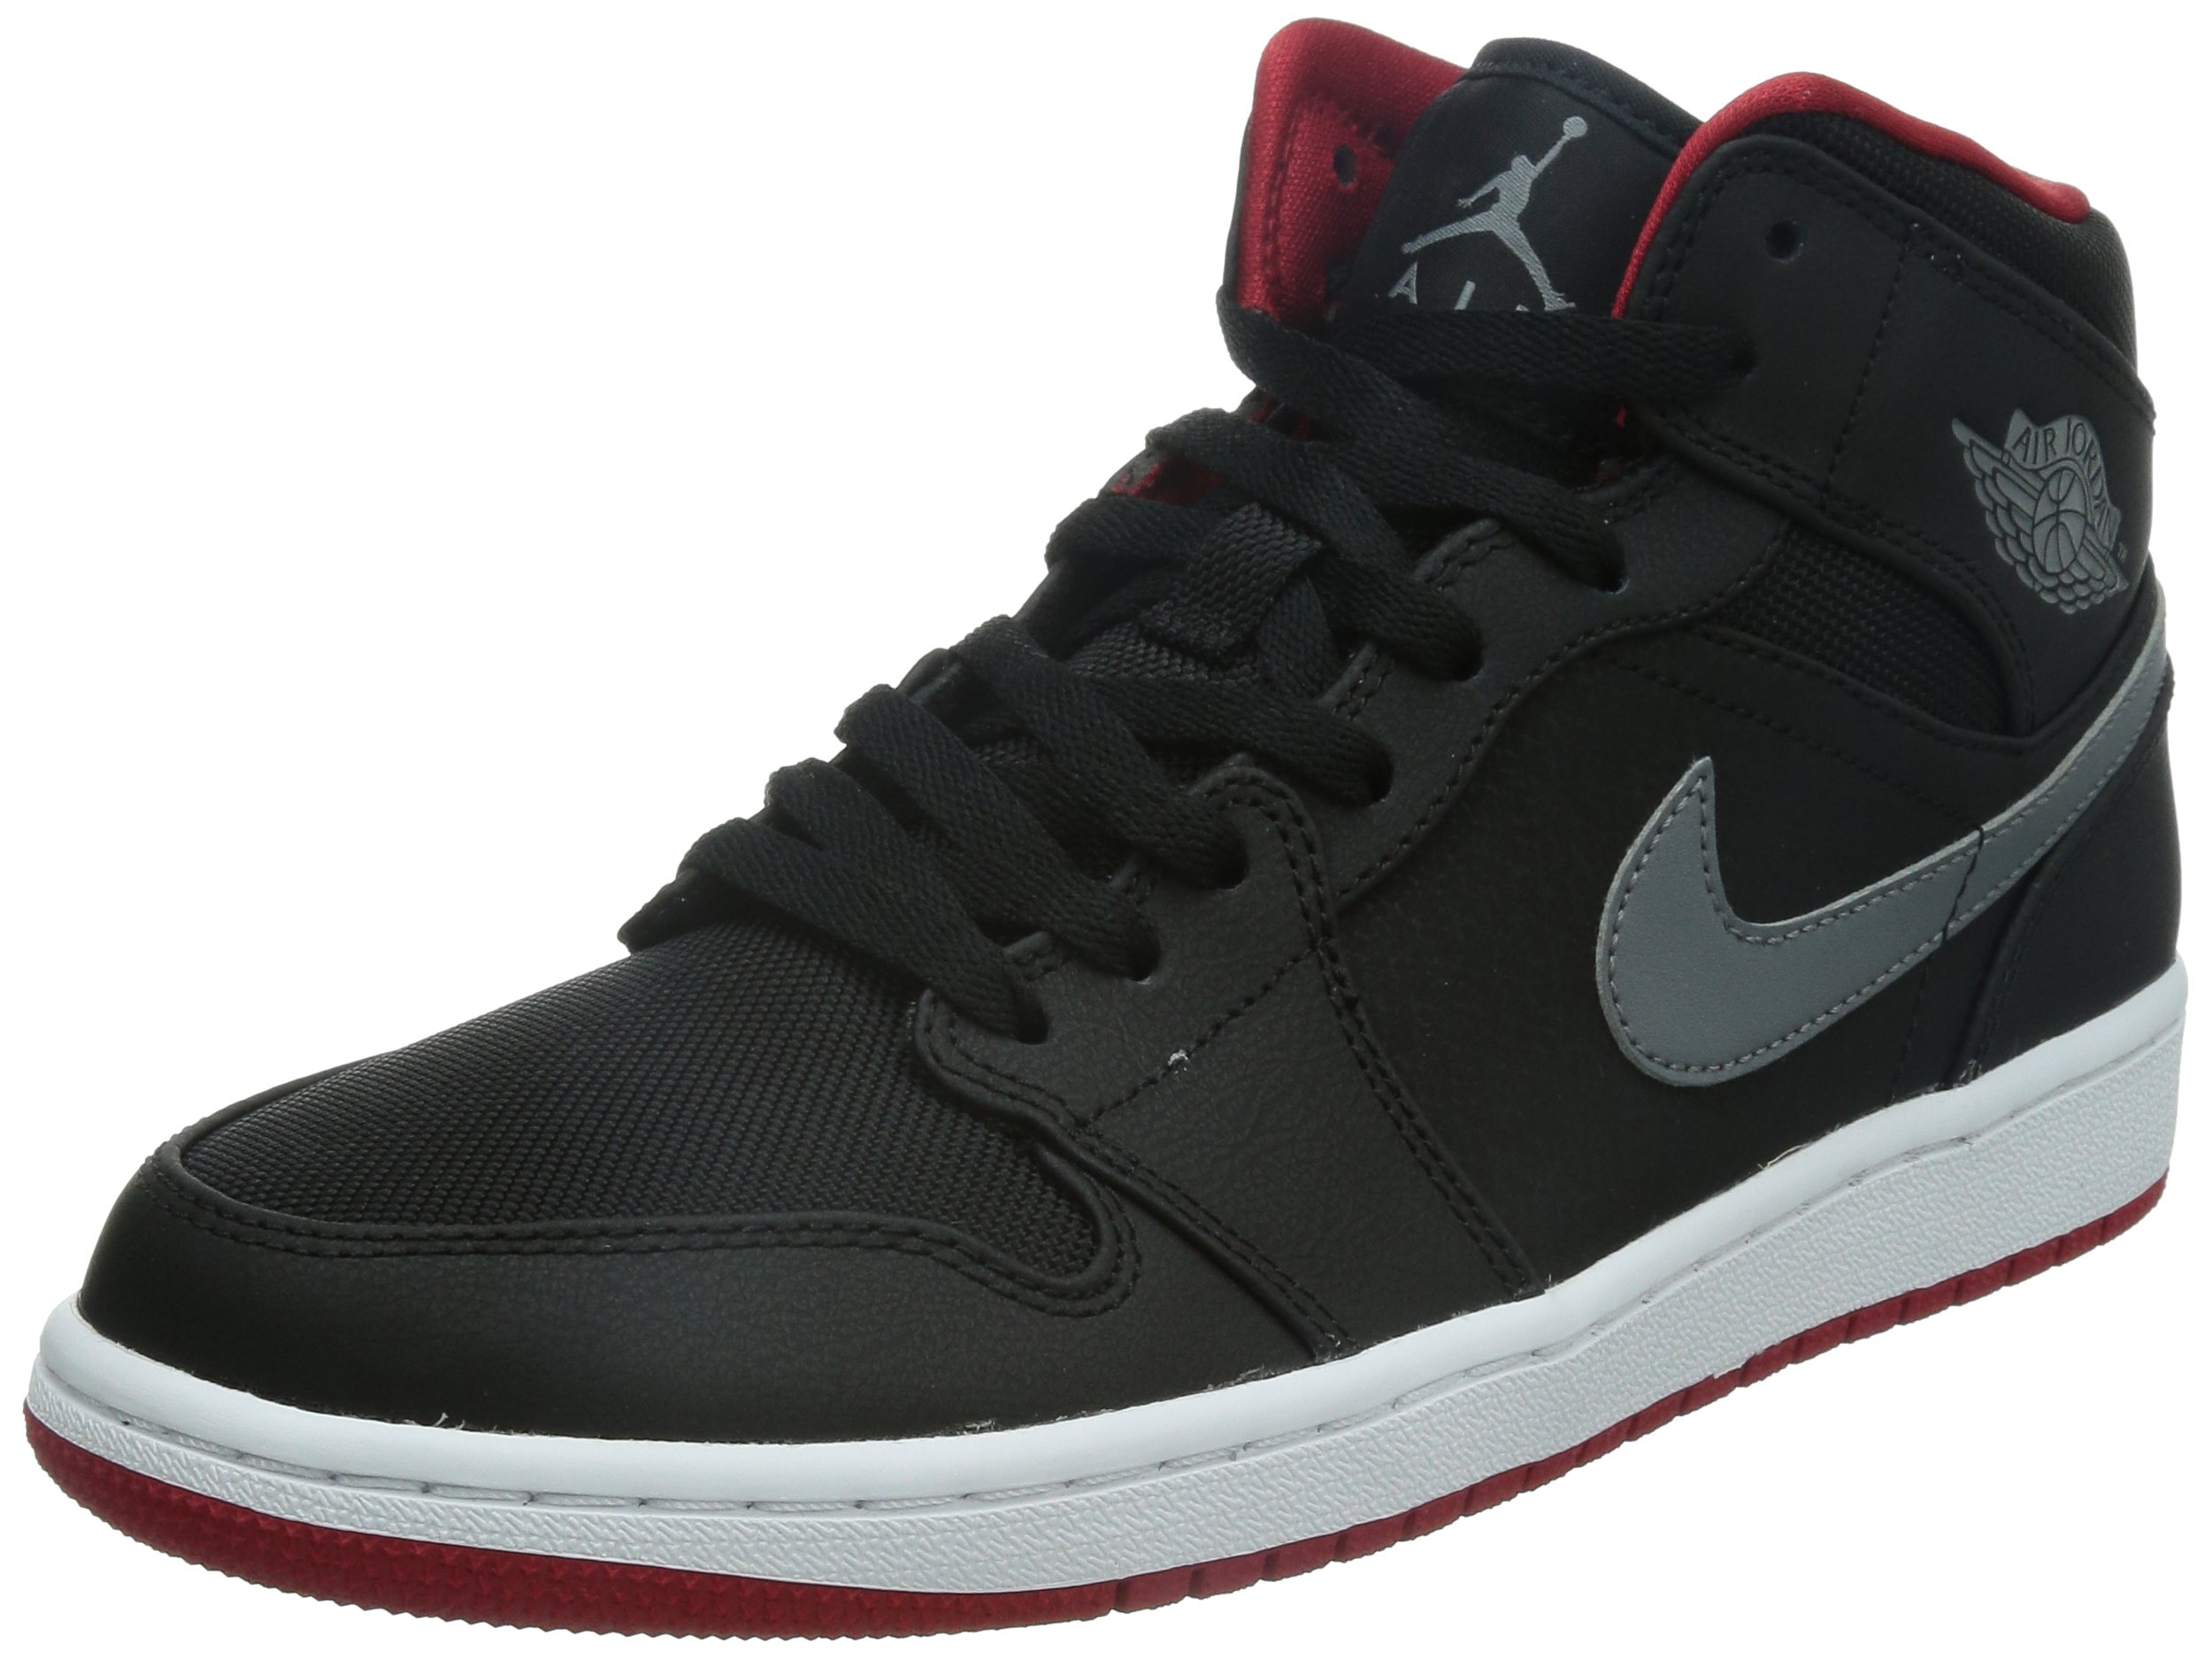 low priced 3a047 48ed8 Galleon - Nike Air Jordan 1 MID Black Grey Red 554724-004 (Size  8.5)